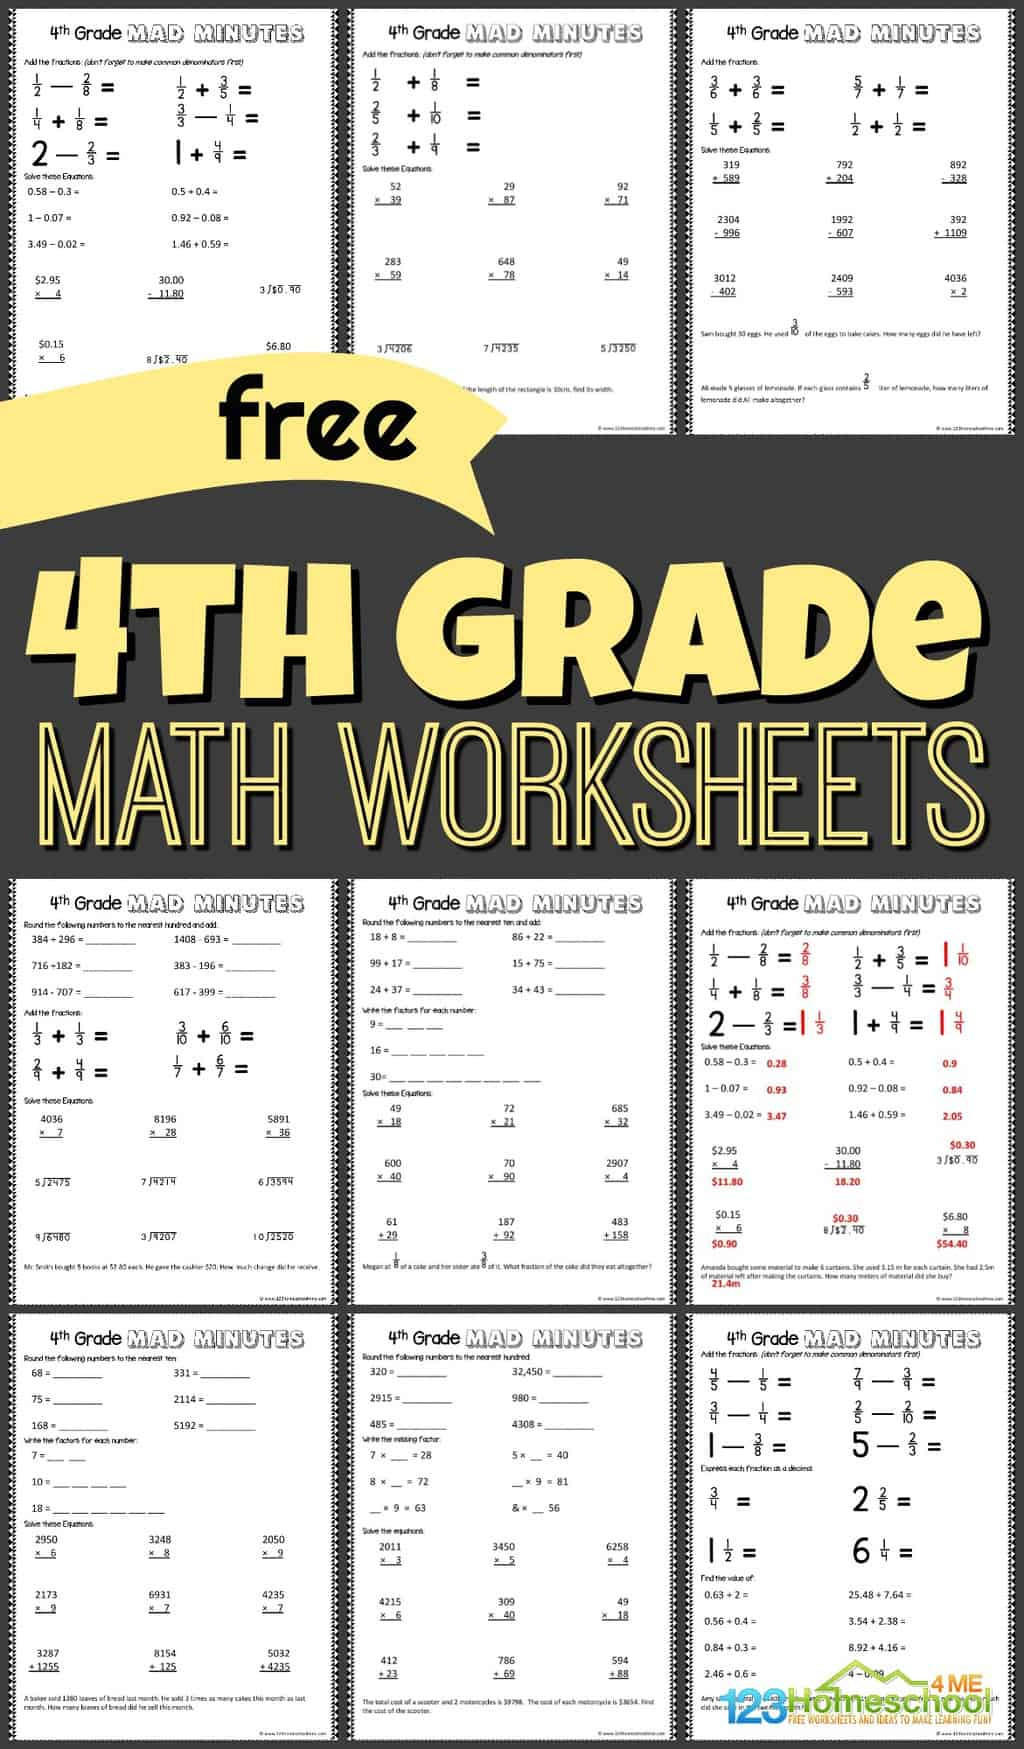 Multiplication Worksheets Grade 4 Pdf Free 4th Grade Math Worksheets Printable Workbook Answers